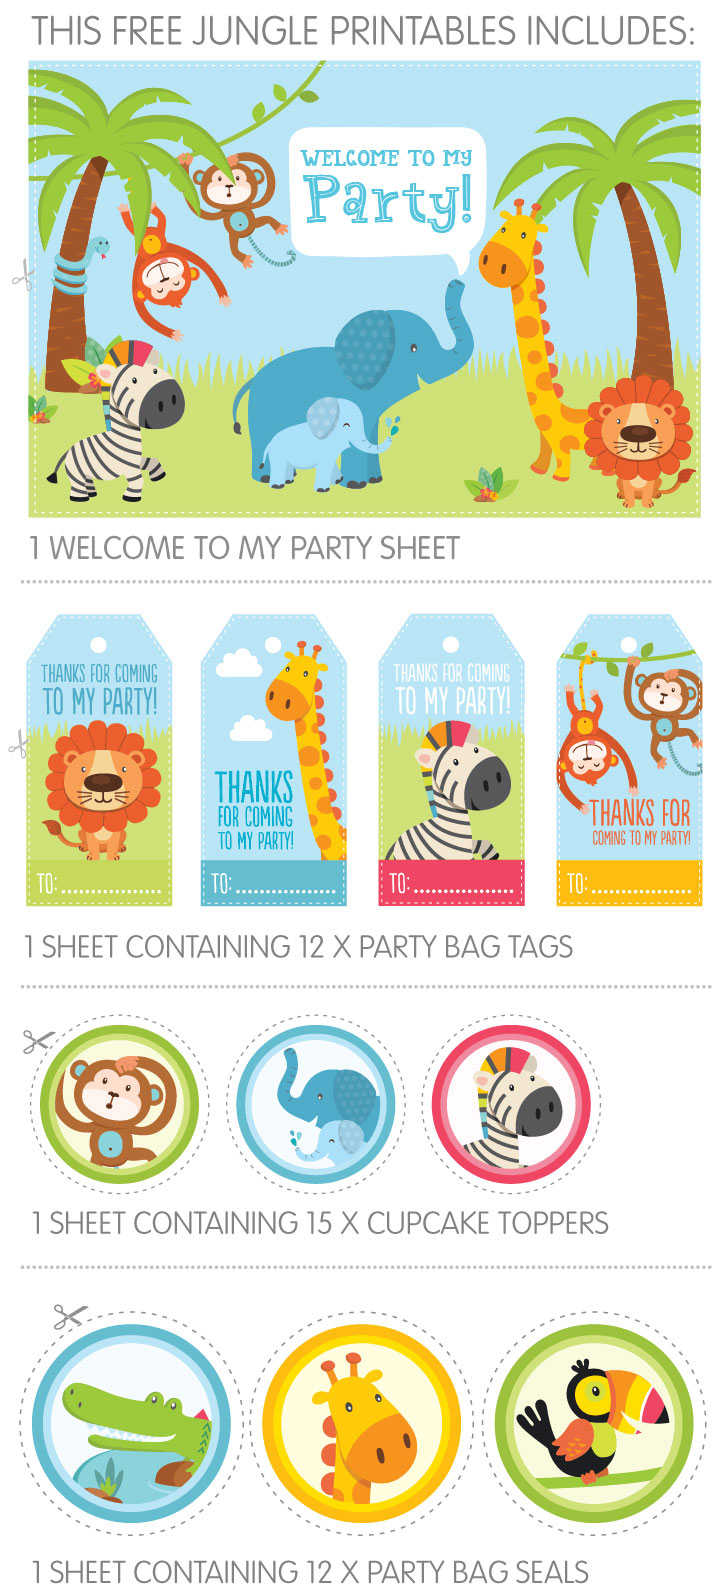 Free Jungle Party Invitation Printables - Free Printable Animal Print Birthday Invitations